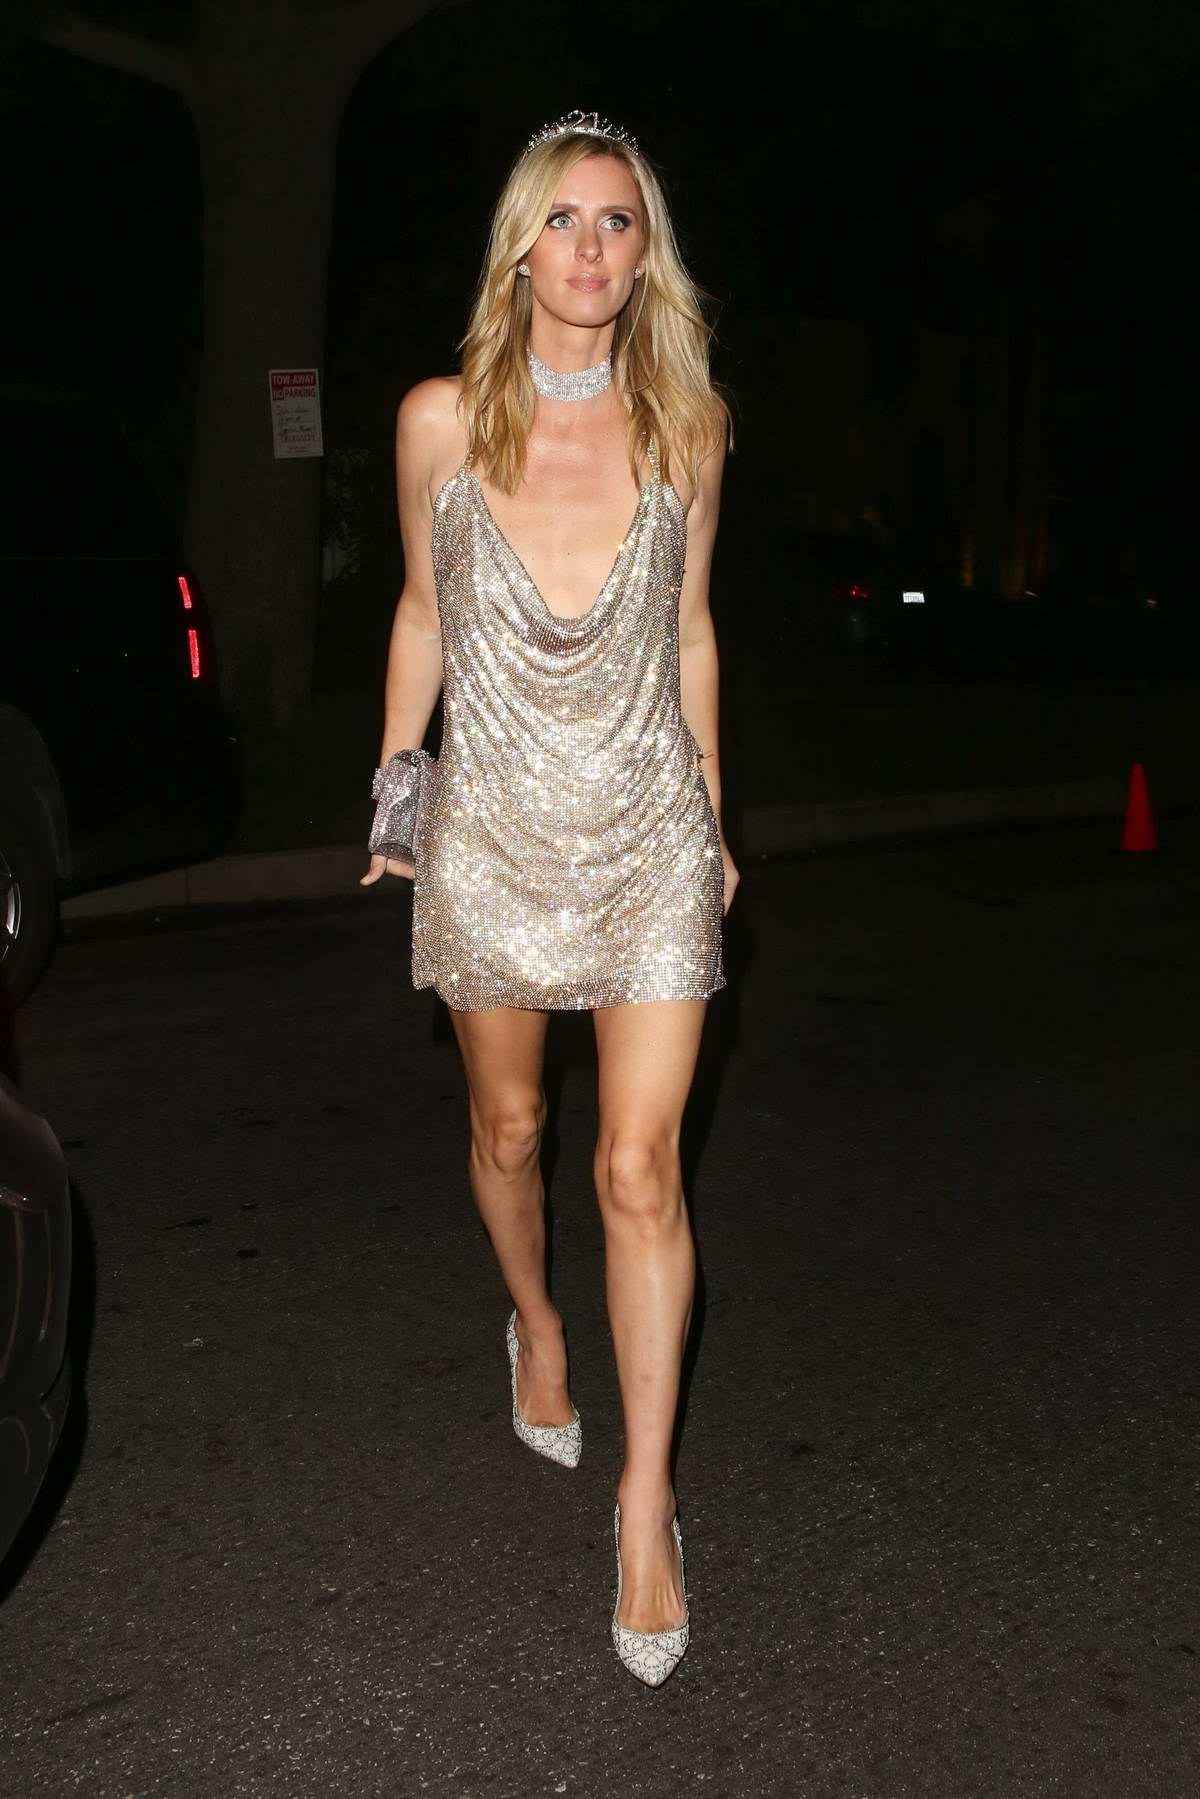 Nicky Hilton attends the Casamigos Halloween Party with her family in Beverly Hills, Los Angeles